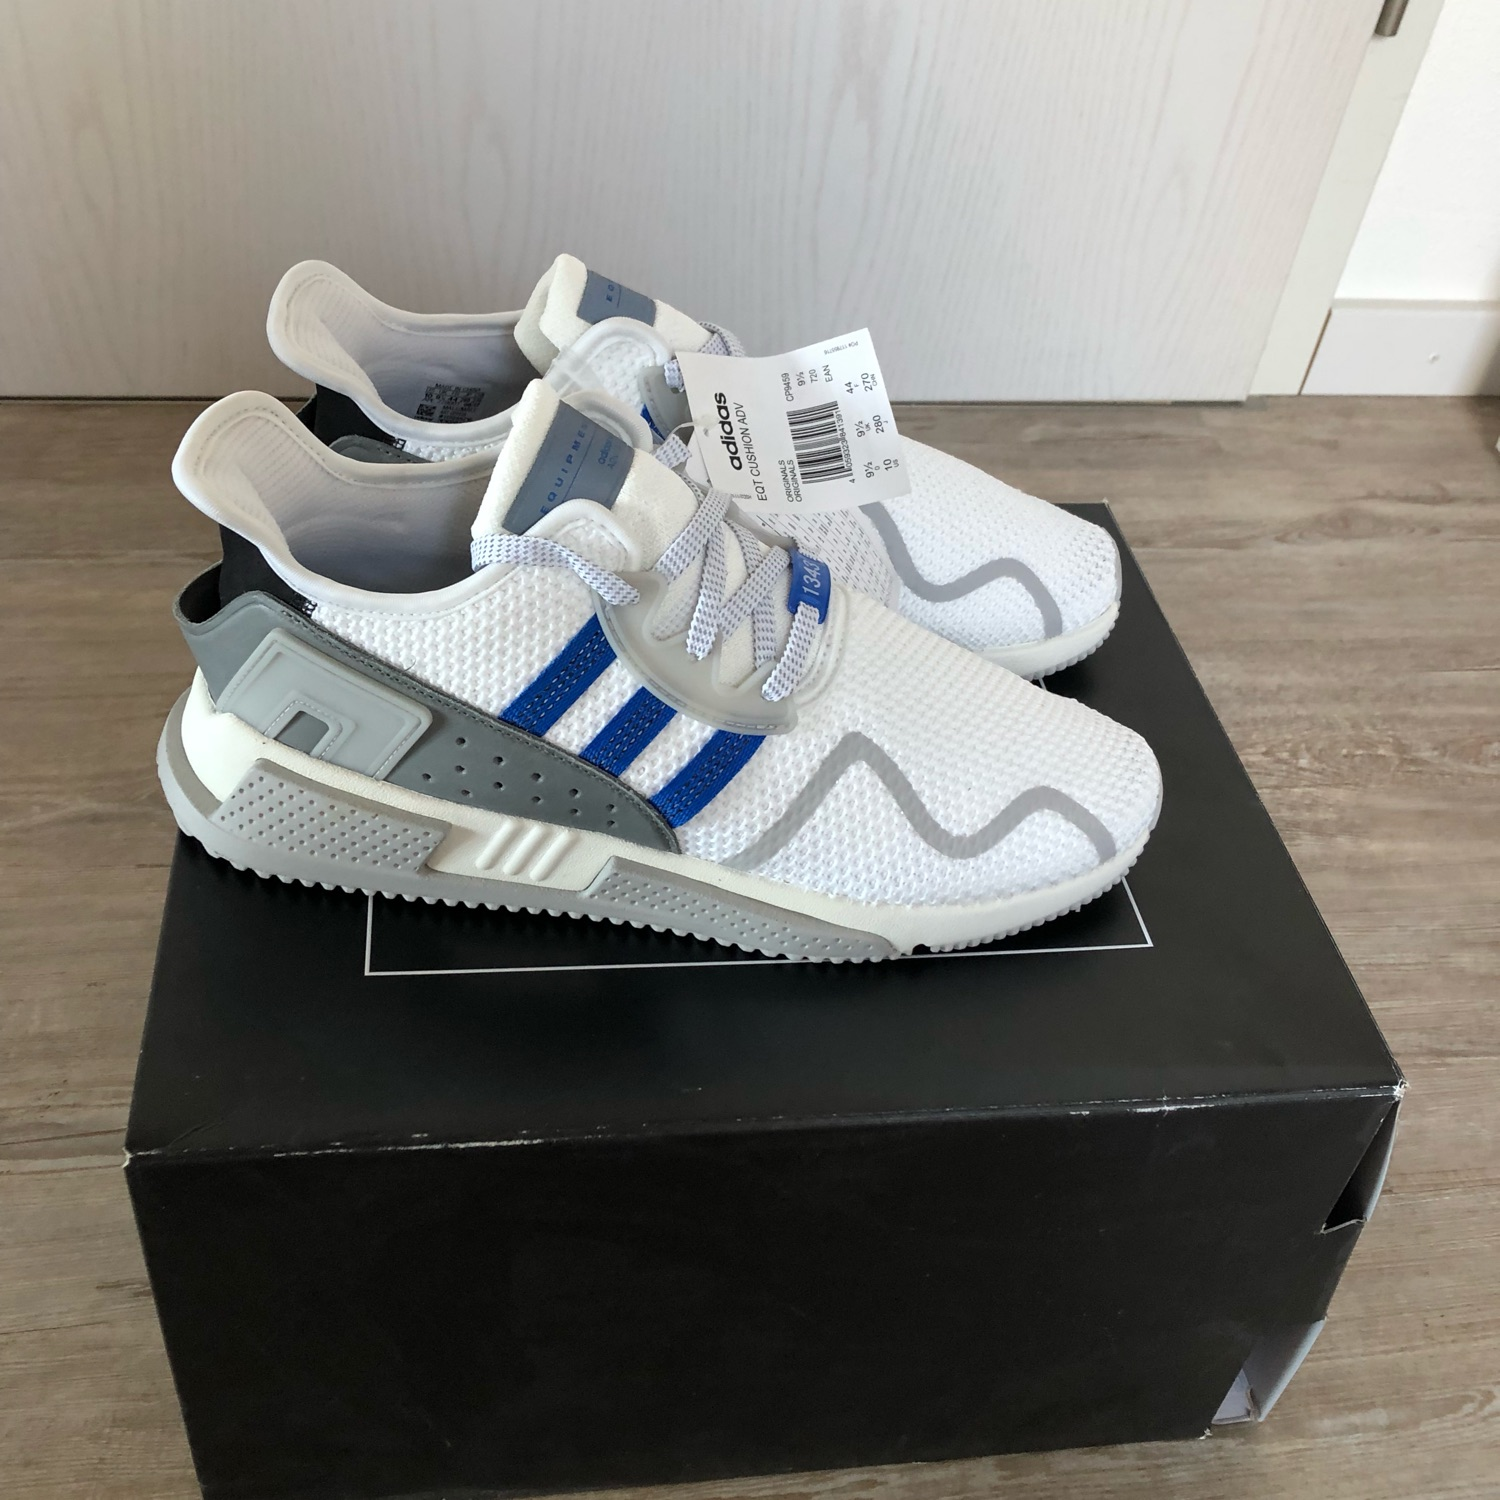 info for ebc4a 9a2a7 Adidas Eqt Cushion Adv 91/17